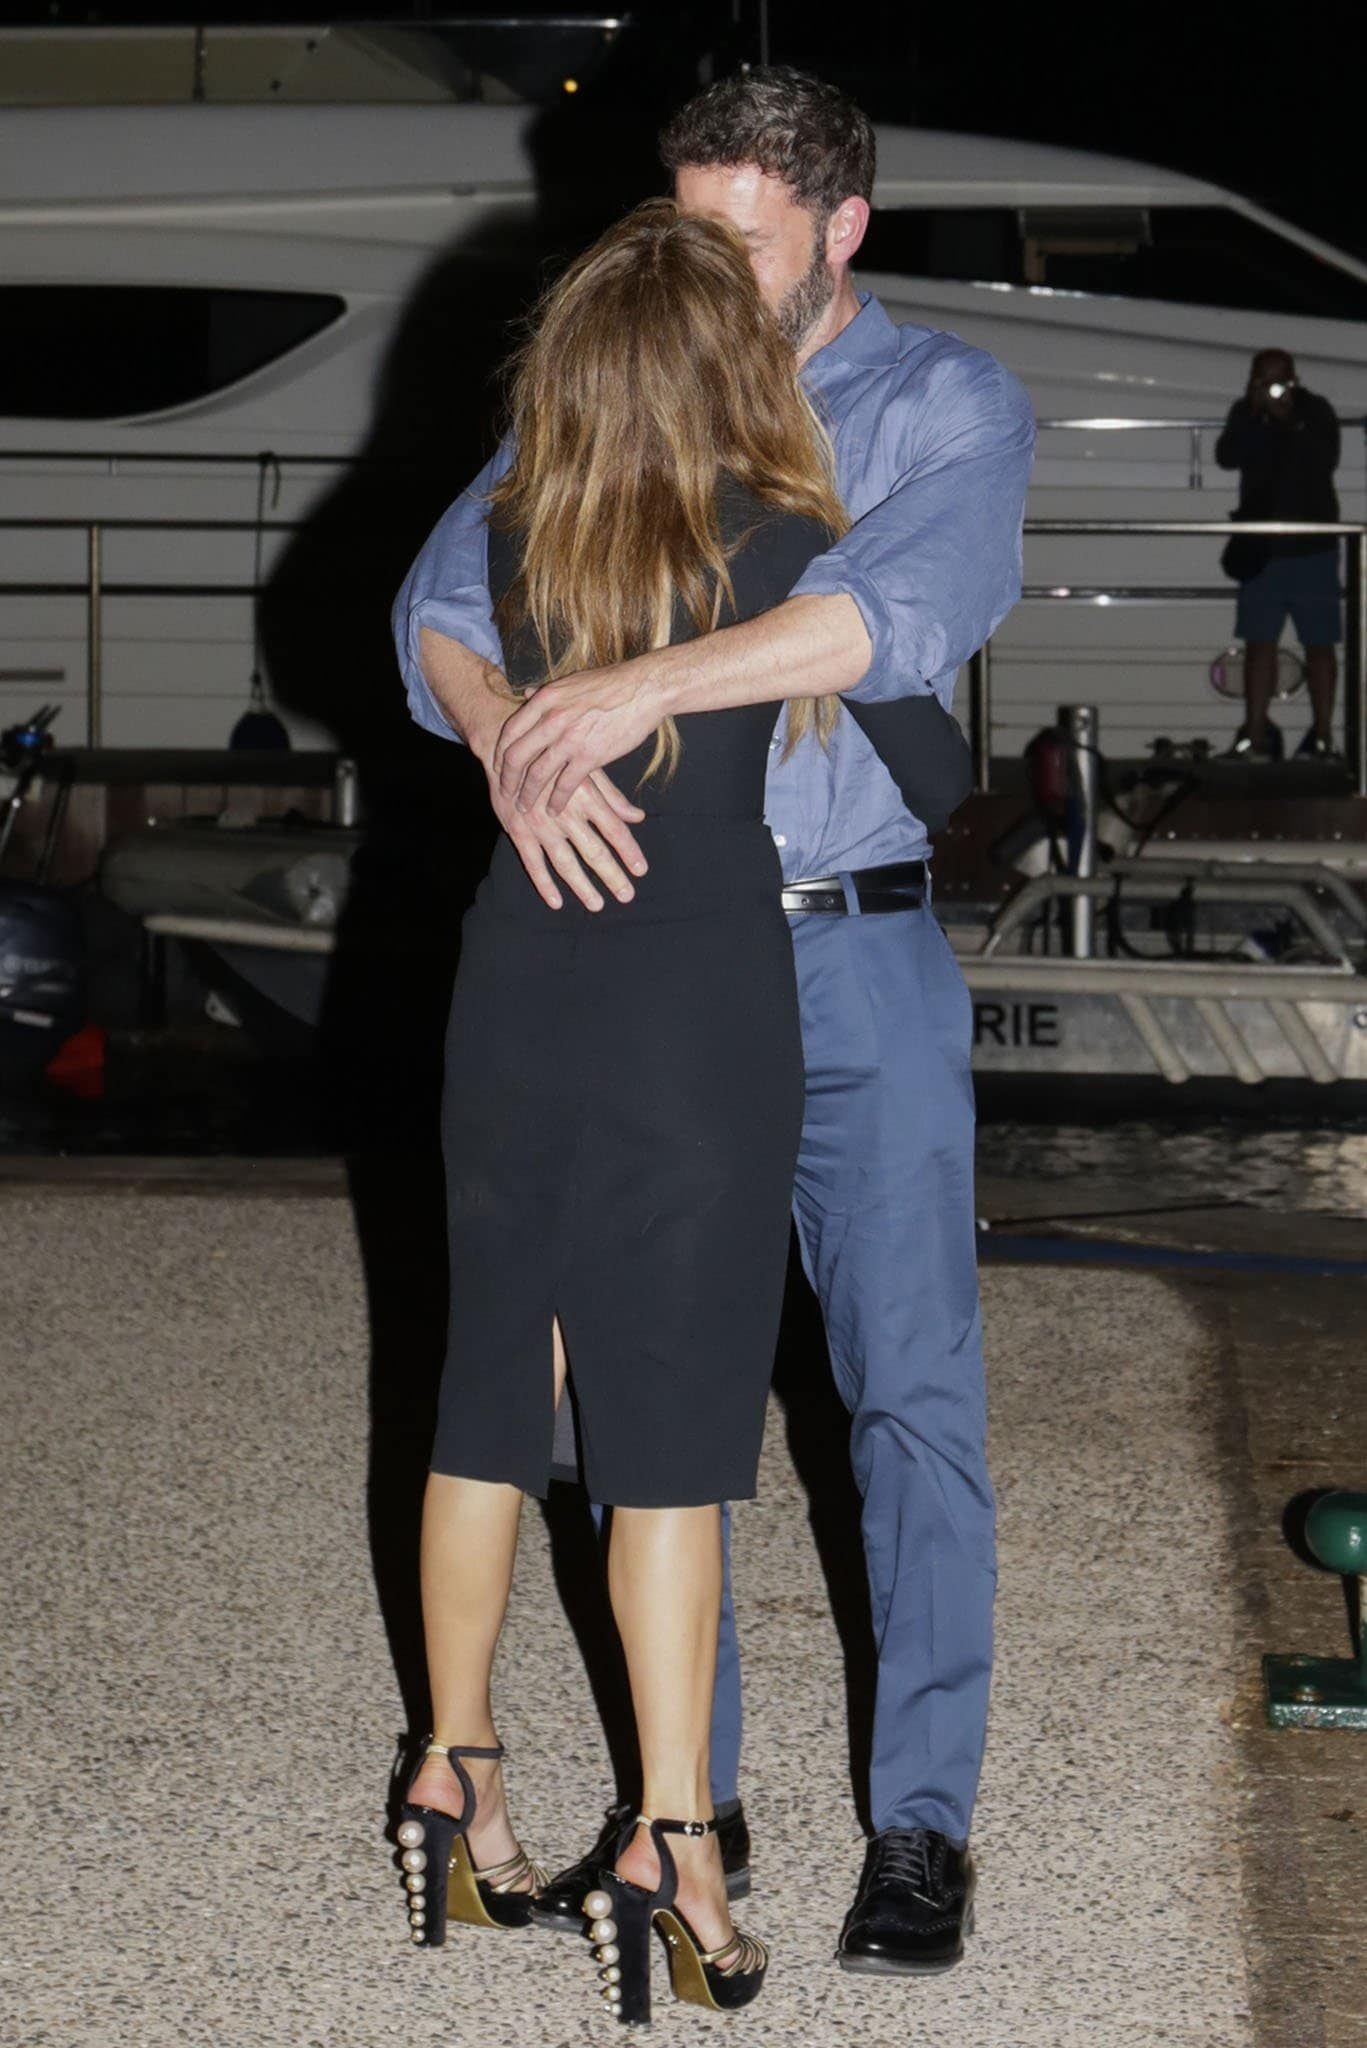 Ben Affleck and Jennifer Lopez pack on the PDA after leaving French restaurant L'Opera at 2AM